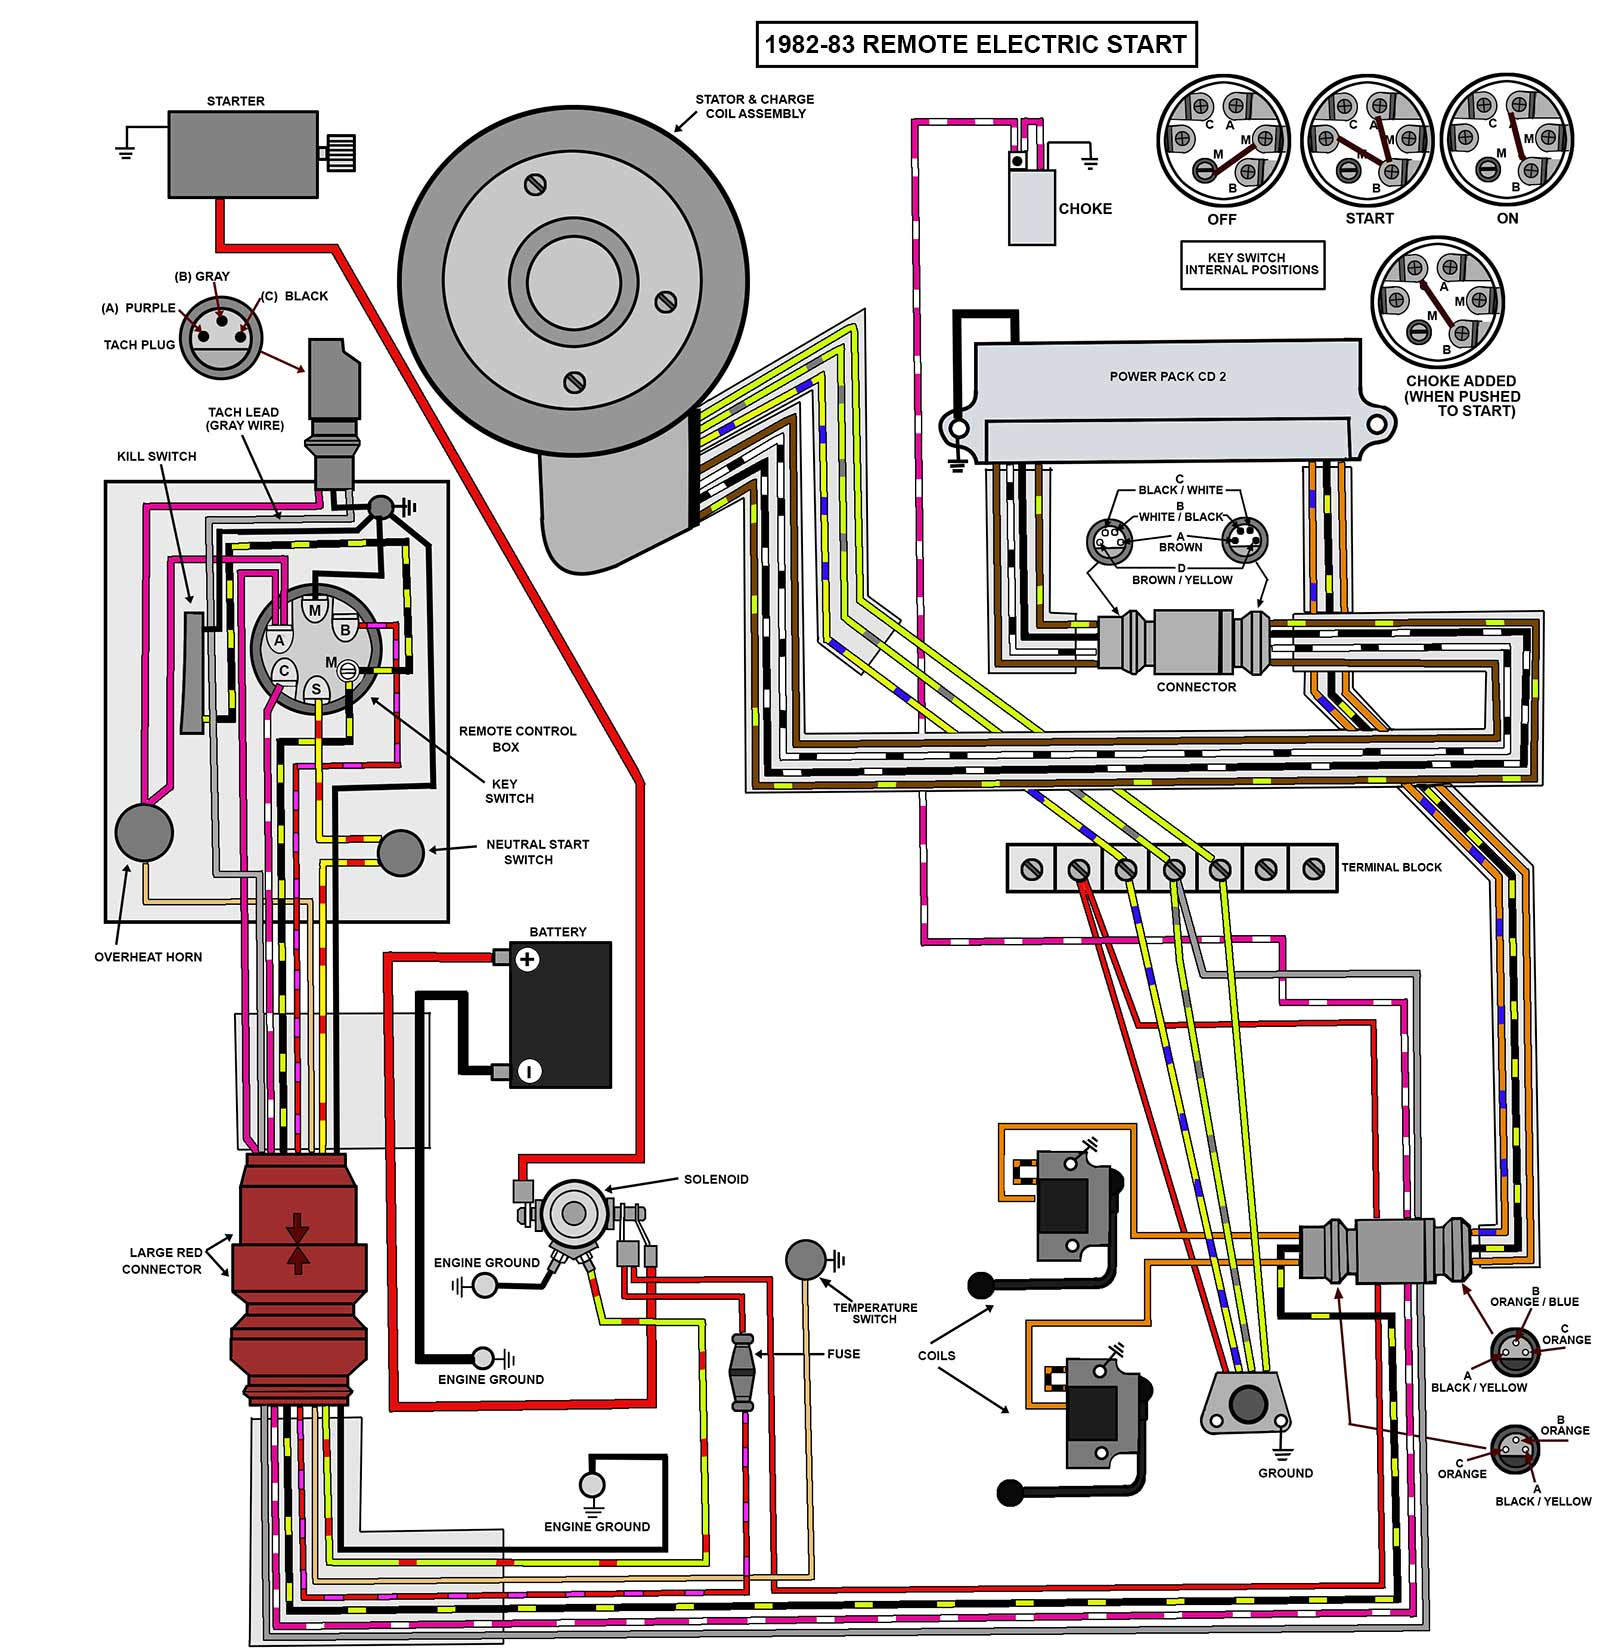 25_35_82 83_elec remote mastertech marine evinrude johnson outboard wiring diagrams  at love-stories.co